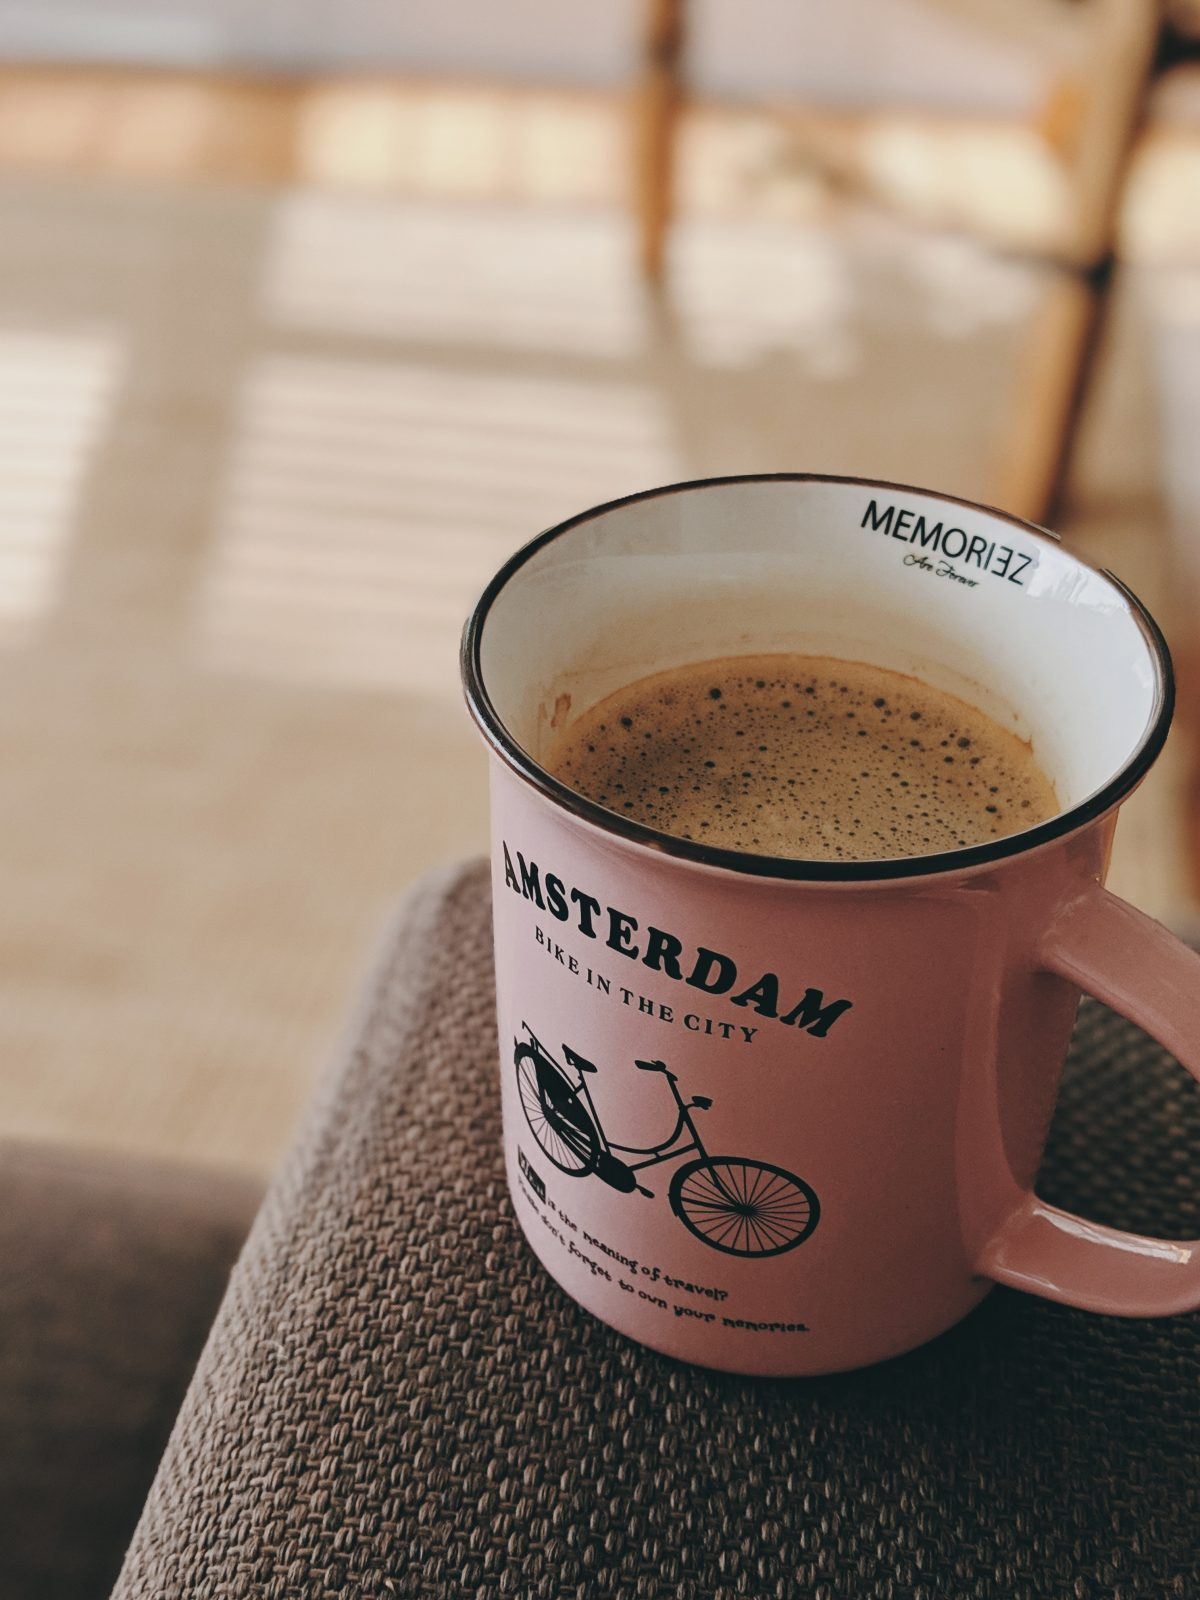 Close-up picture of well-brewed coffee in an Amsterdam cup